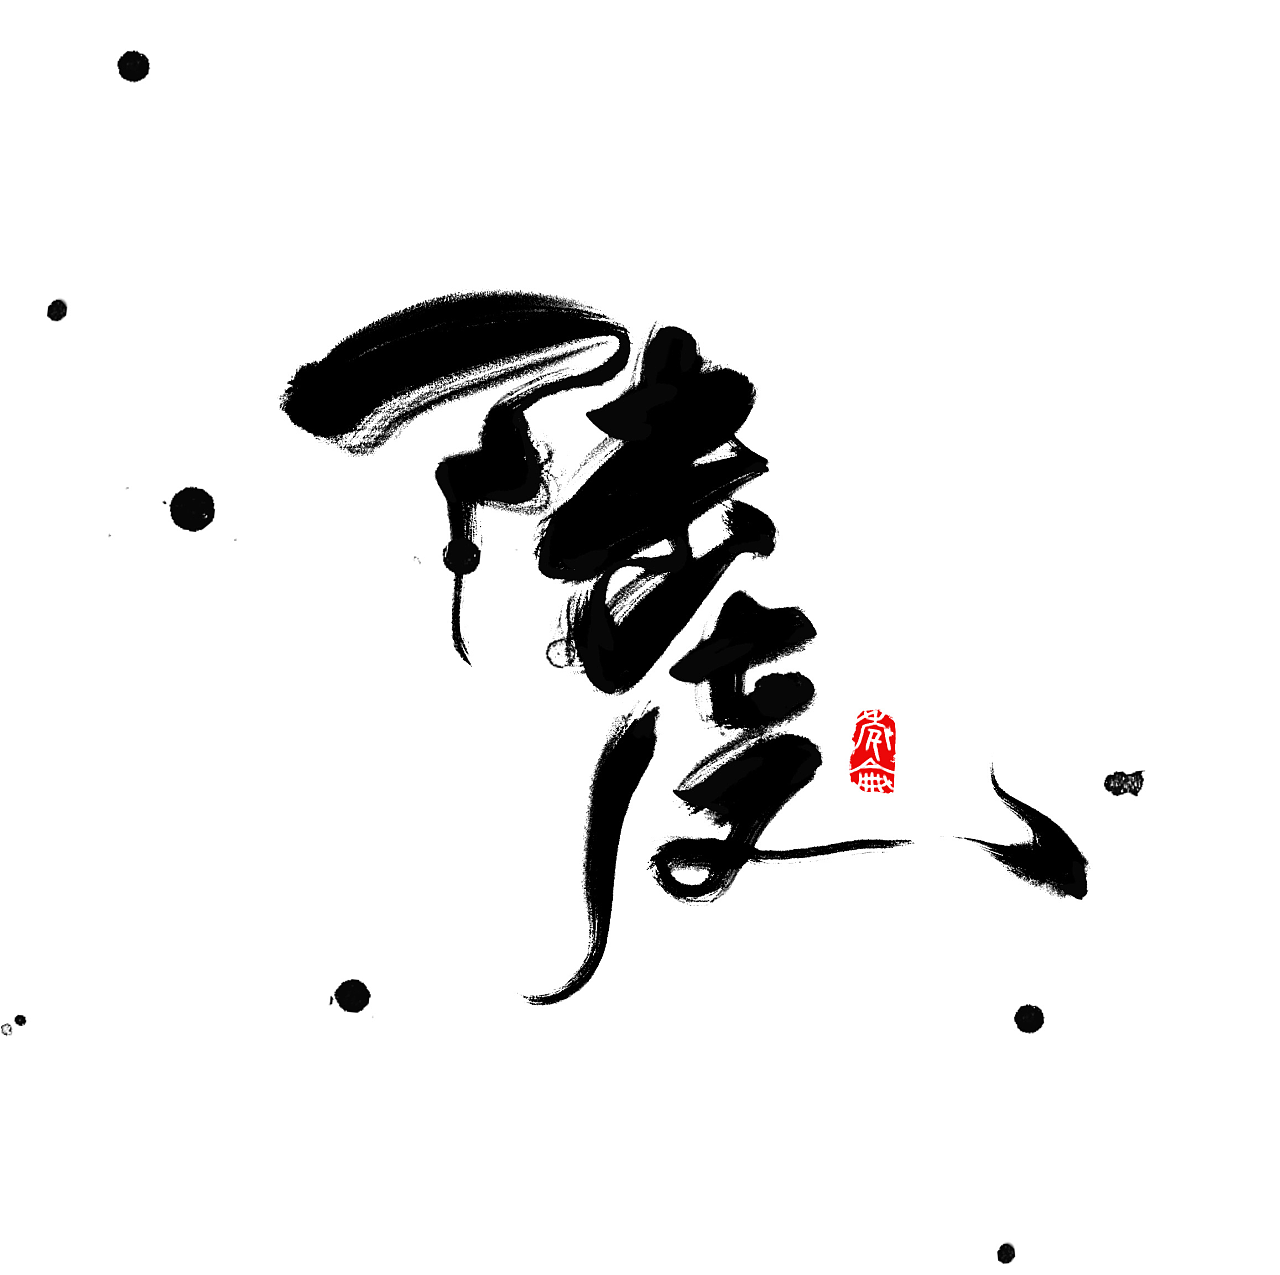 chinesefontdesign.com 2017 09 12 05 58 49 408401 16P Chinese traditional calligraphy brush calligraphy style appreciation #.21